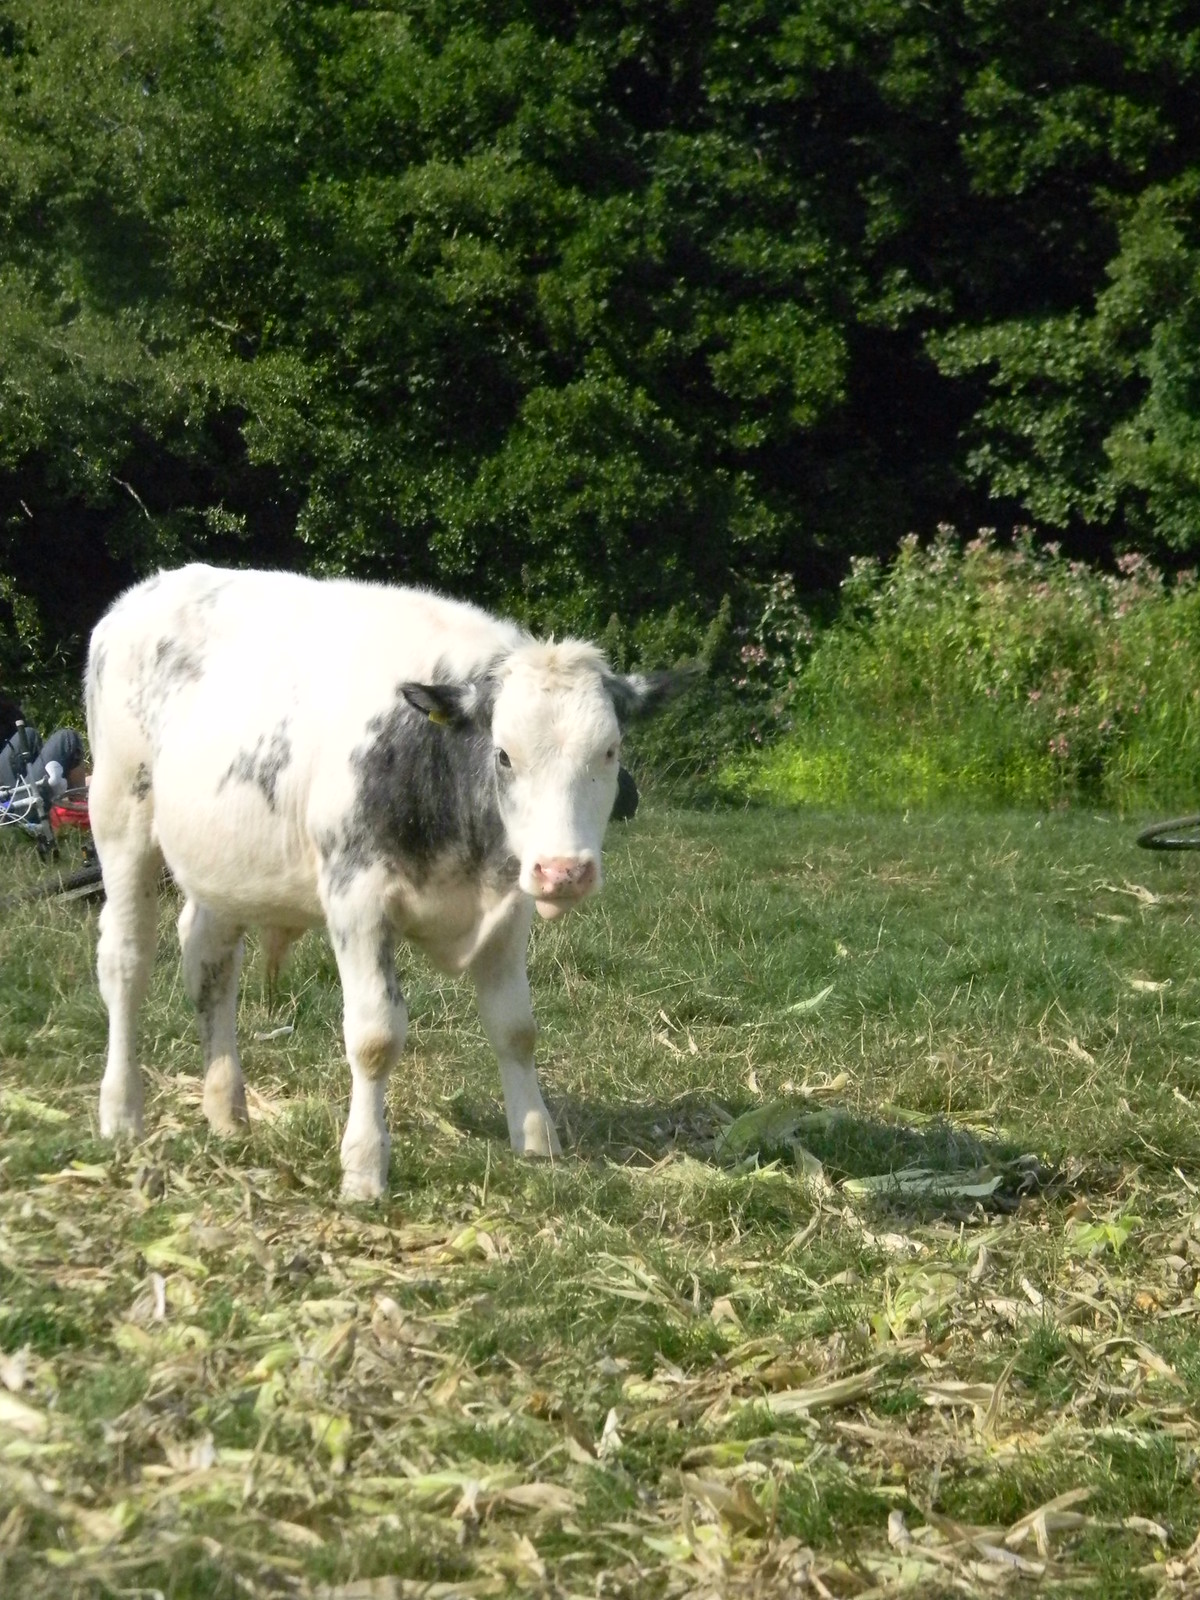 Calf by the the Ouse Uckfield to Lewes